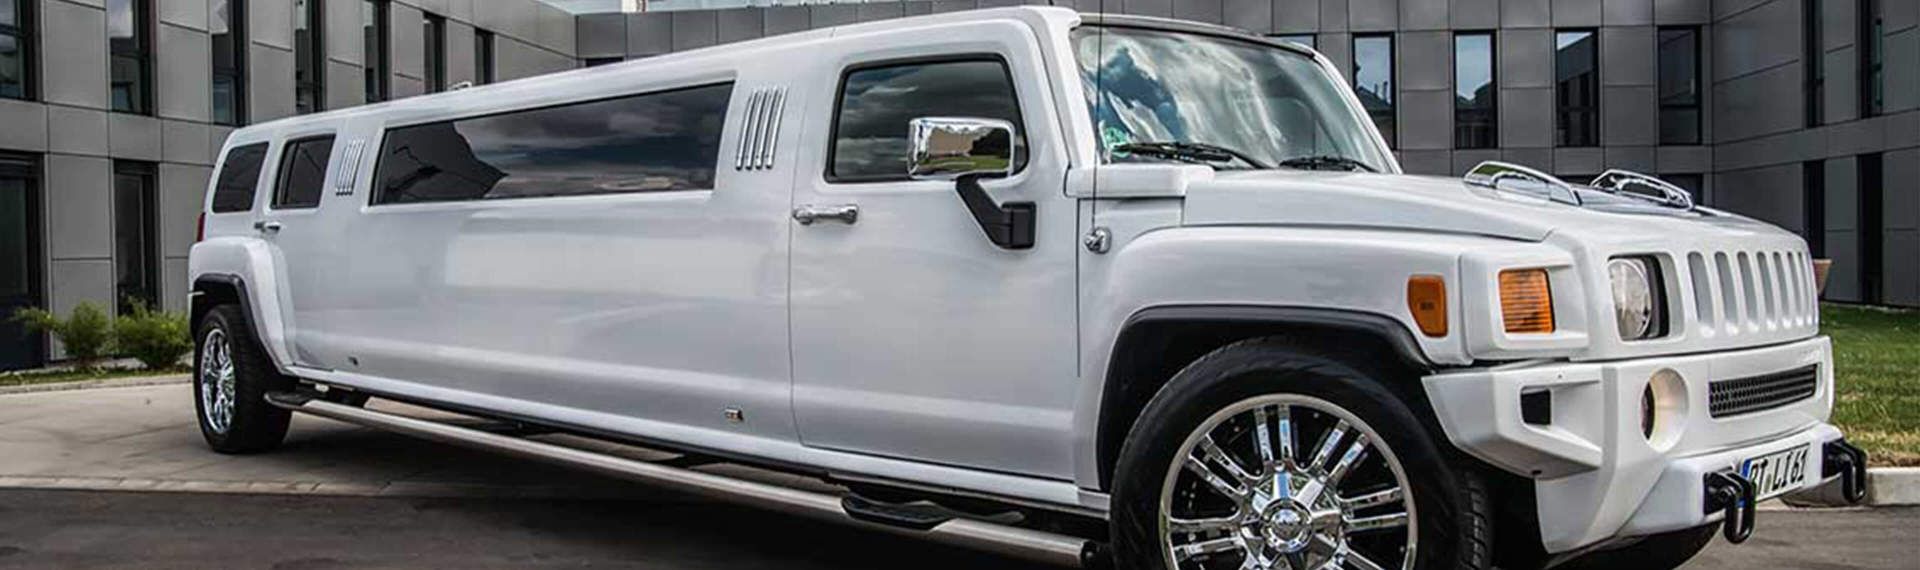 Stretch Limo Hummer Stuttgart | Pissup Tours